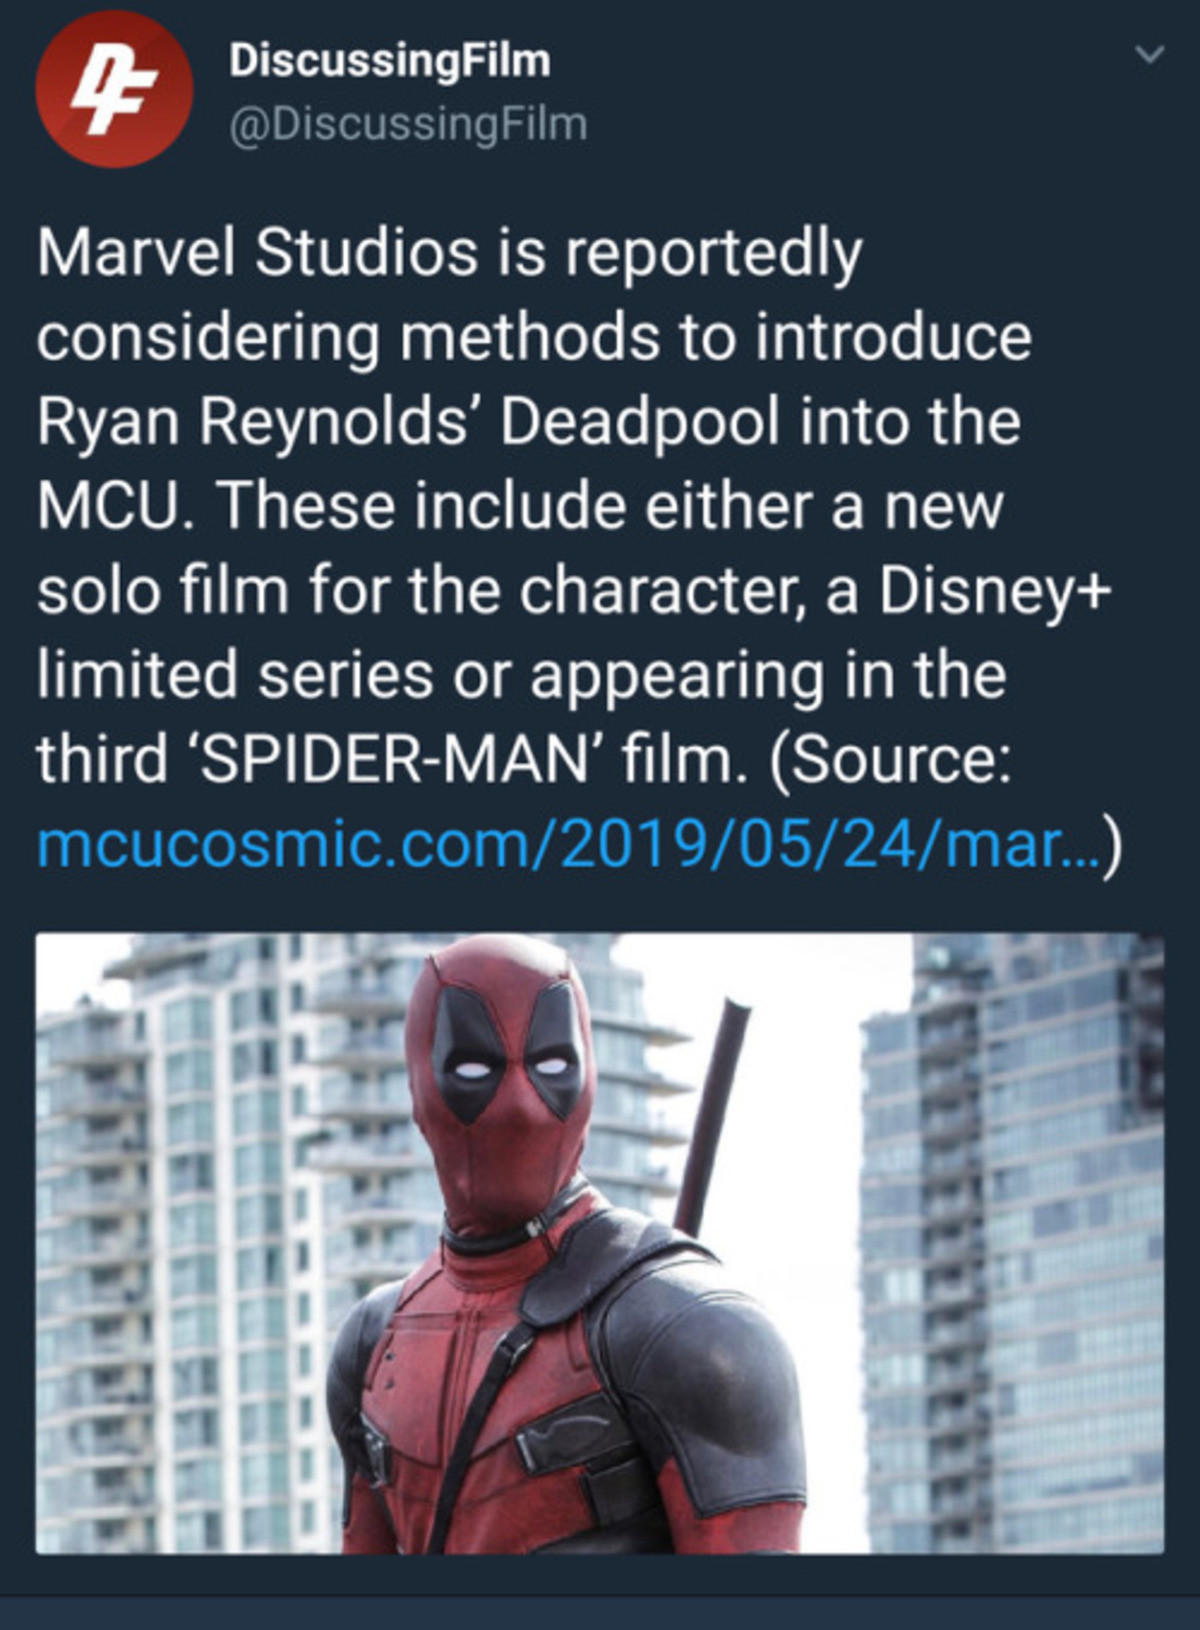 Deadpool Meets Spidey?. .. How are they going to approach an R rated character? Also, what about the xmen.